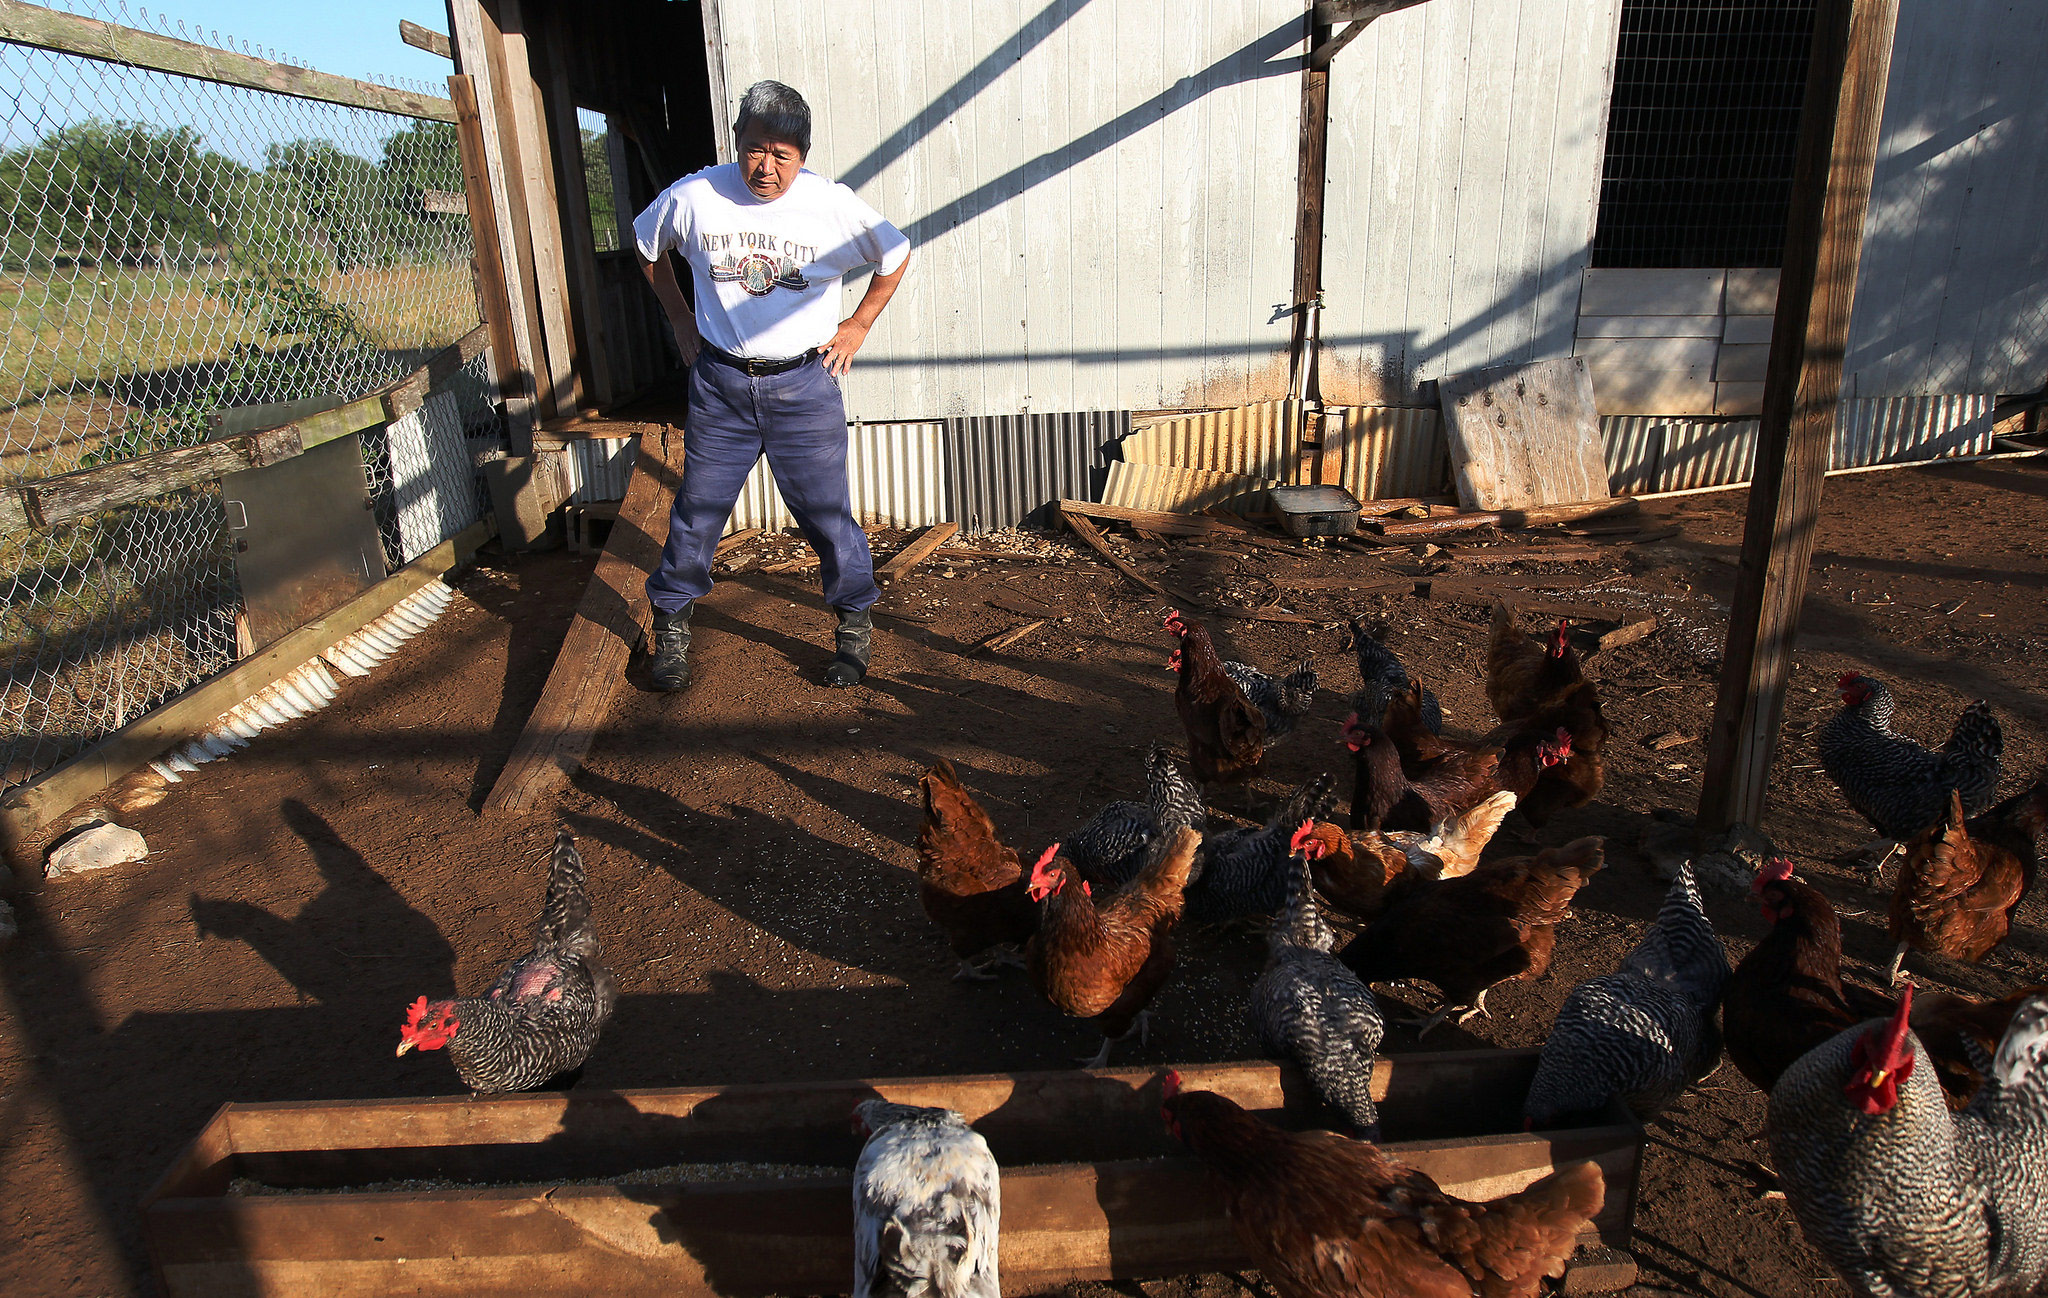 A middle-aged Asian American man stands with his hands on his hips watching chickens eat.